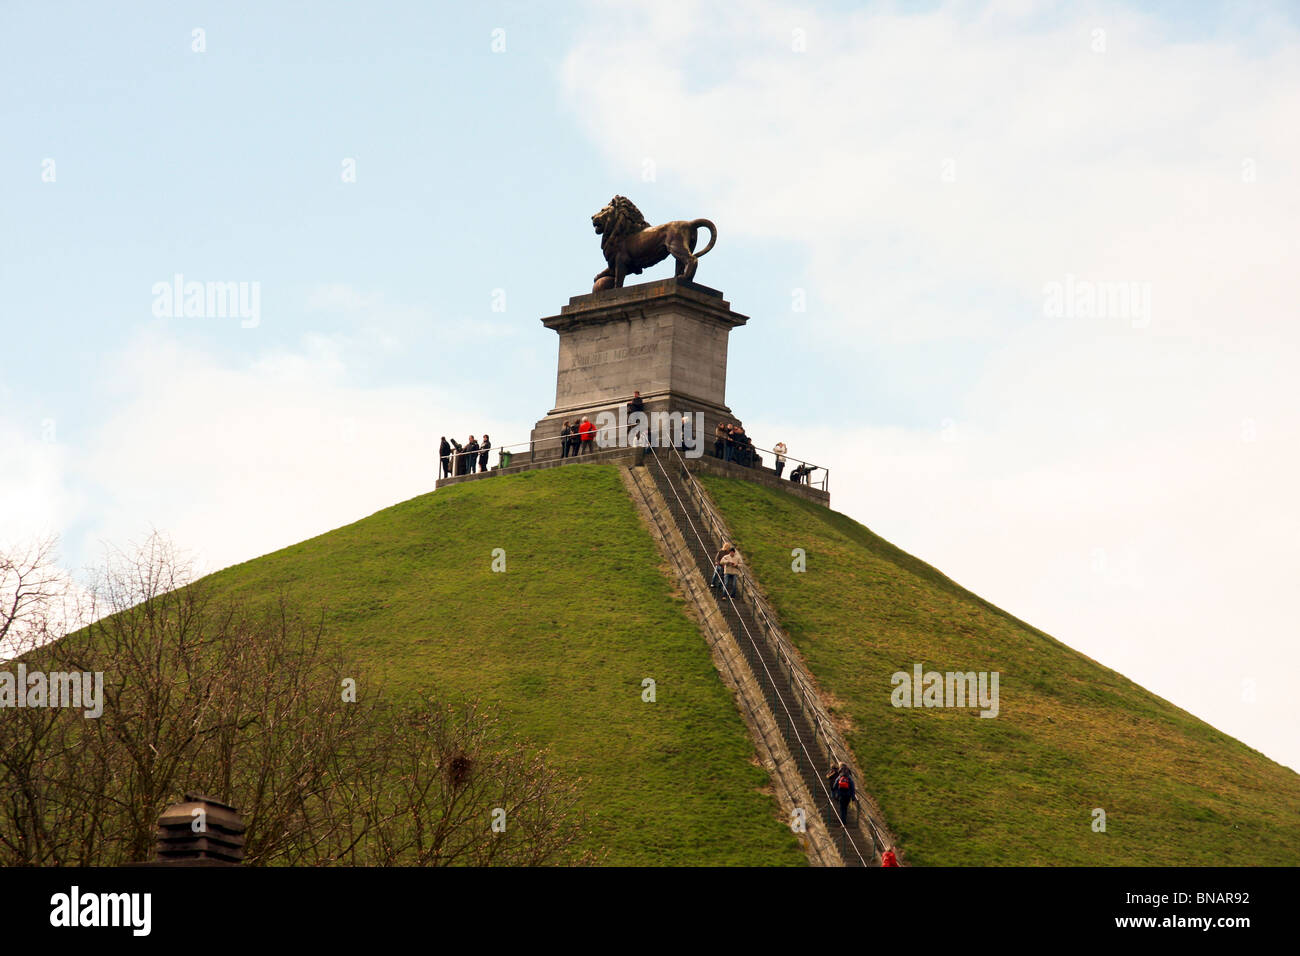 Belgium, Waterloo, the Lion hill on the battlefield - Stock Image